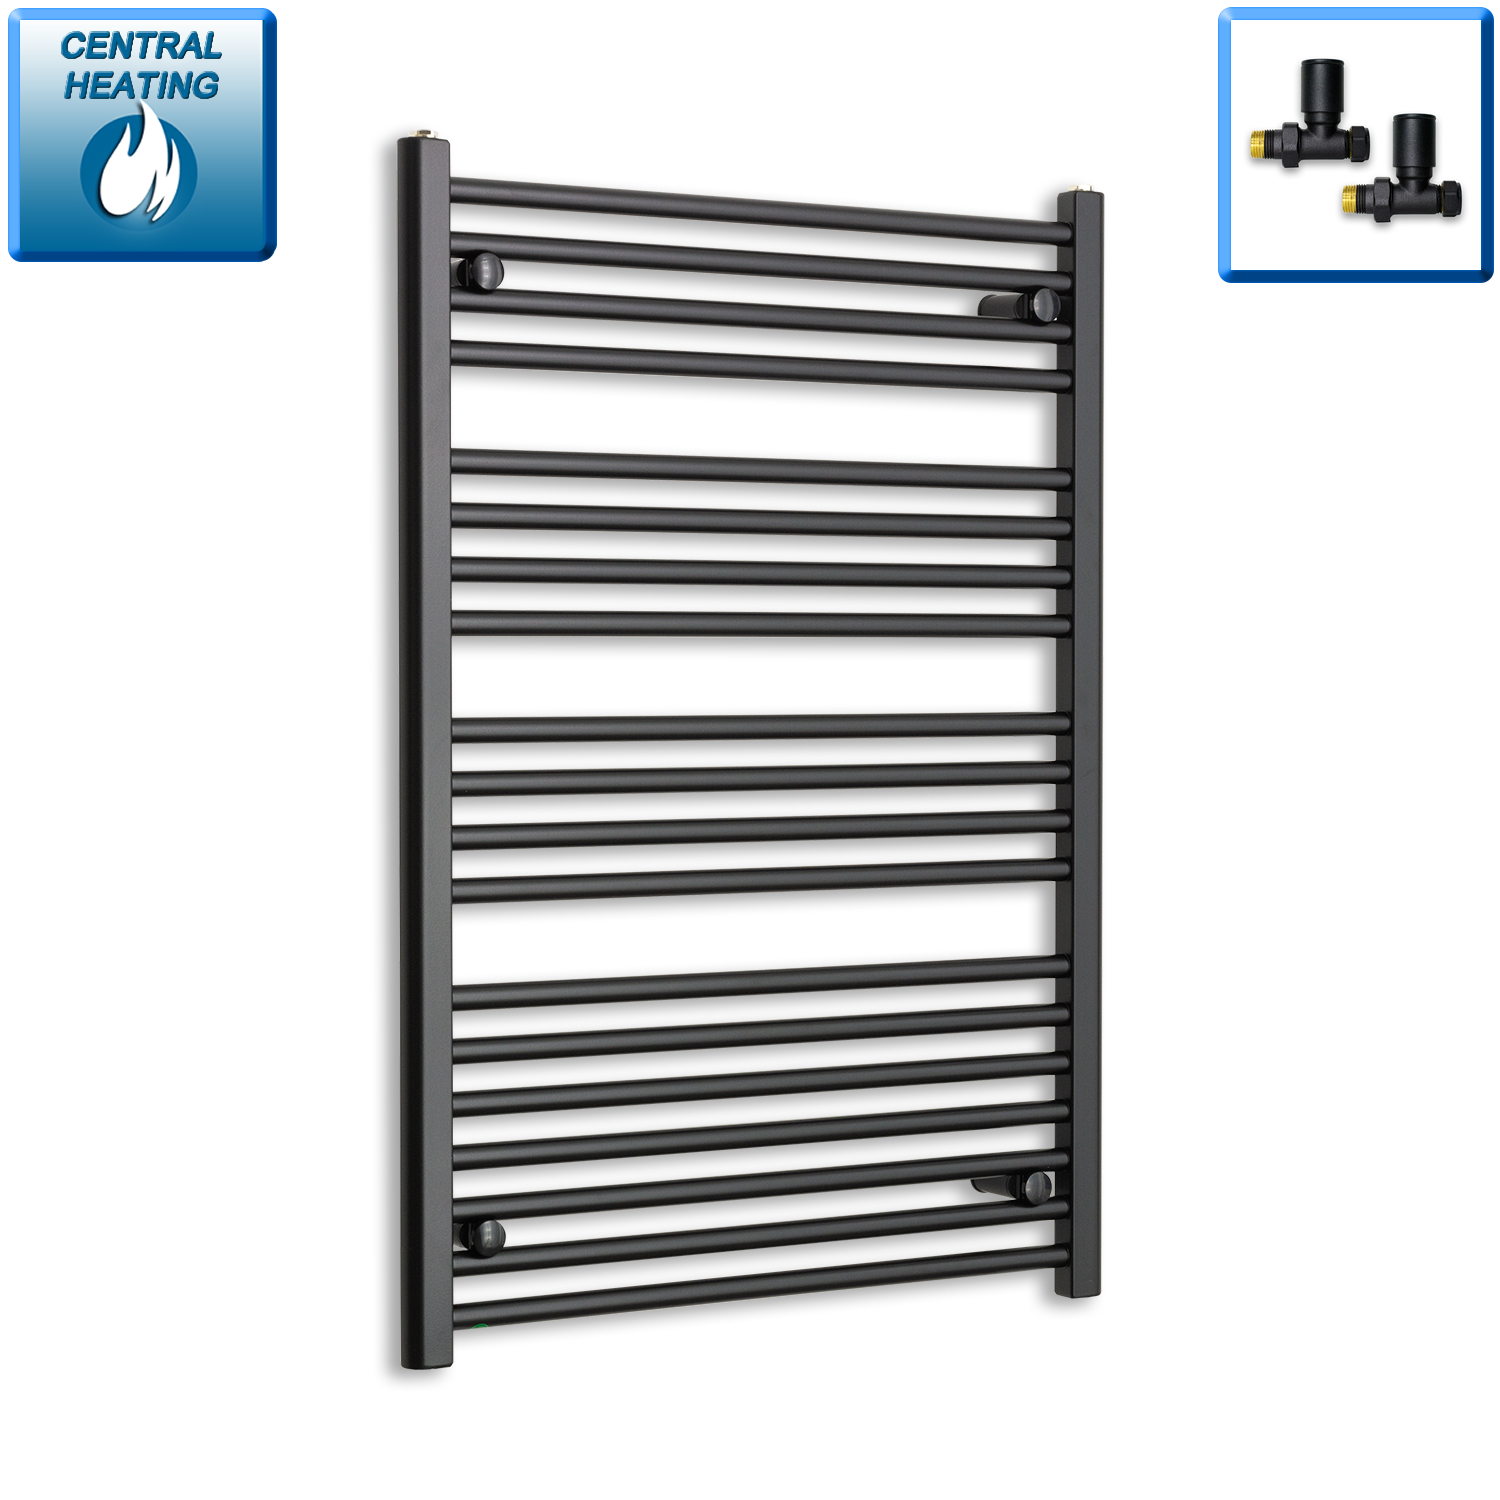 700mm Wide 1000mm High Flat Black Heated Towel Rail Radiator HTR,With Straight Valve